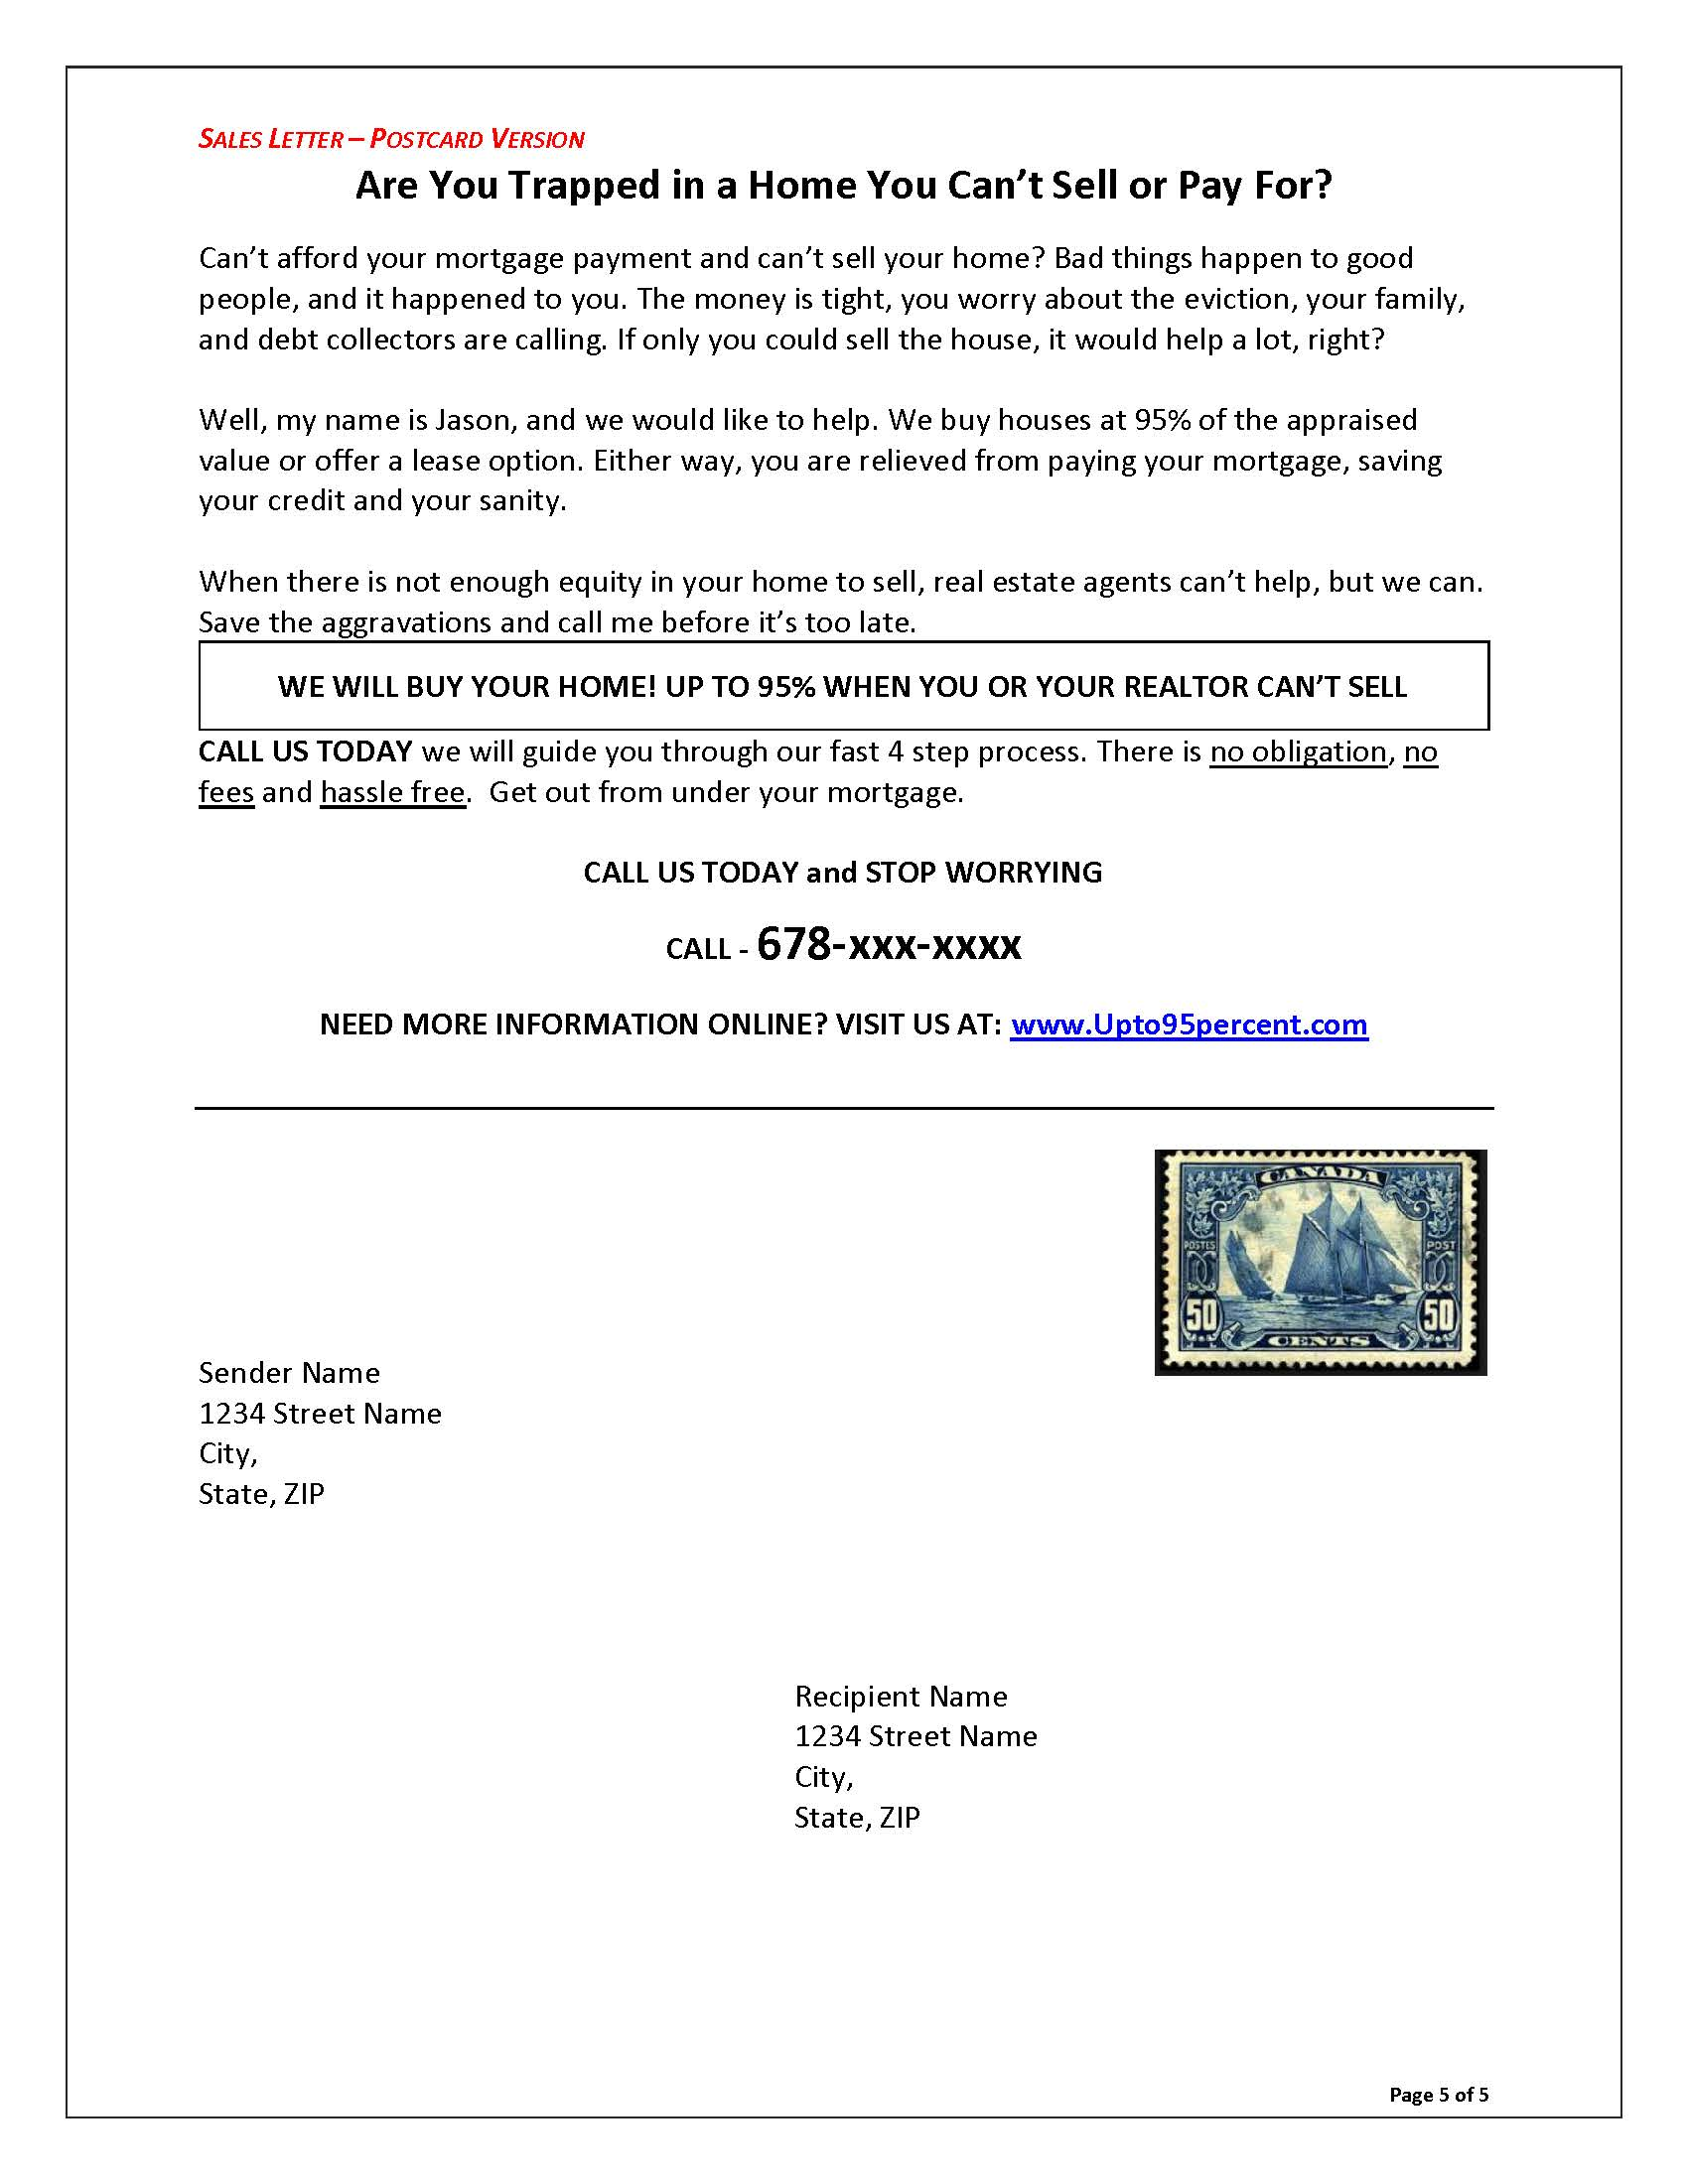 Sales Letter Series - Real Estate Co._Page_5